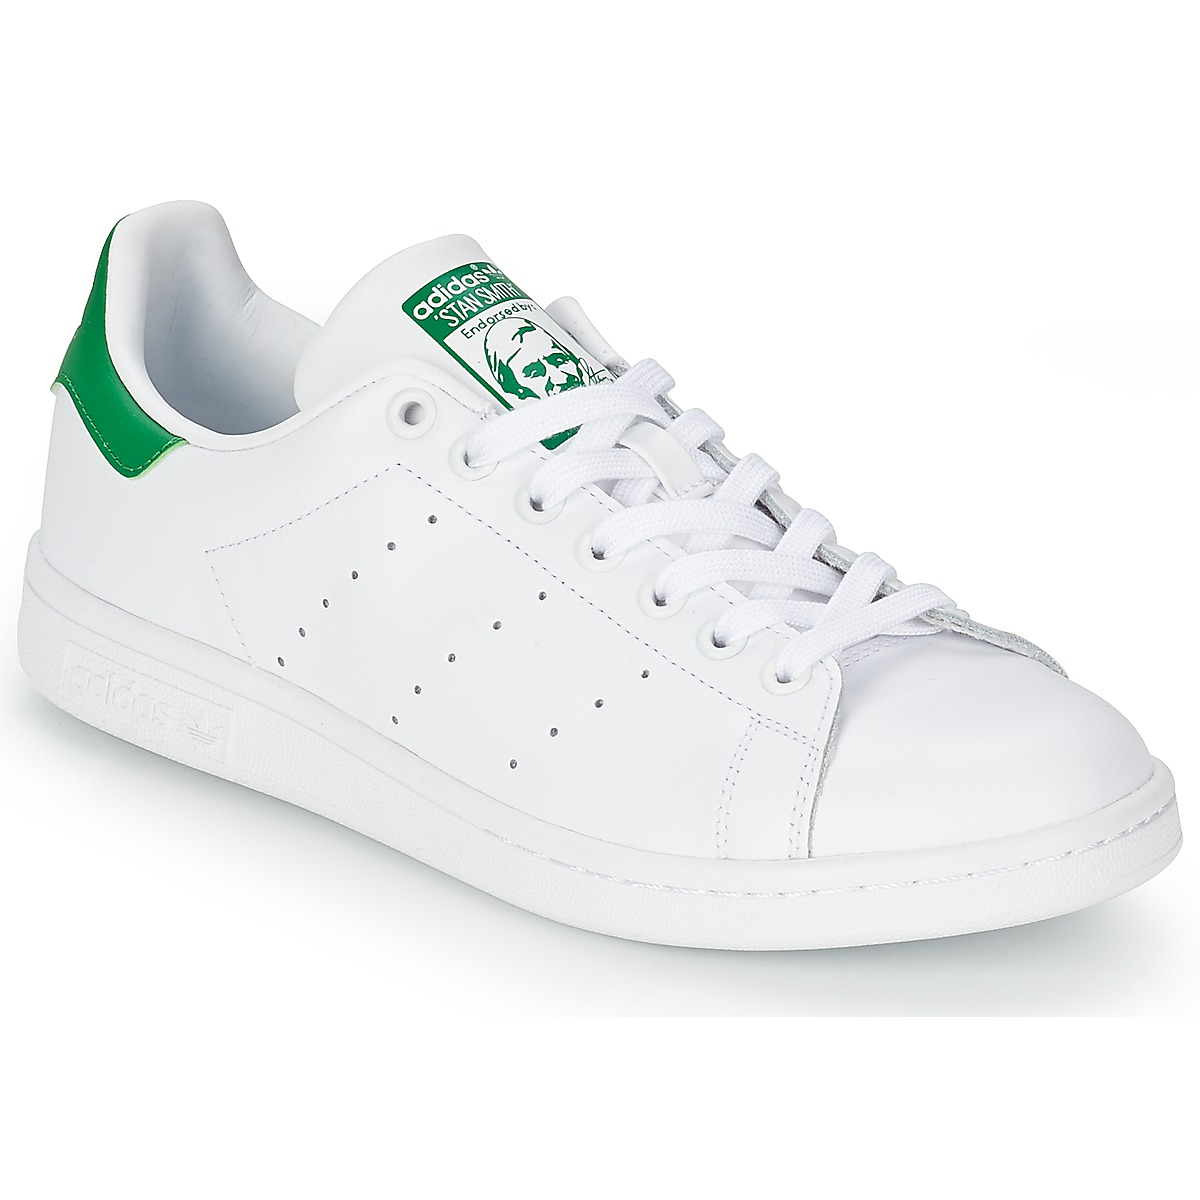 Lage sneakers adidas Originals STAN SMITH Wit / Groen - Gratis ...: www.spartoo.be/adidas-Originals-STAN-SMITH-x793843.php